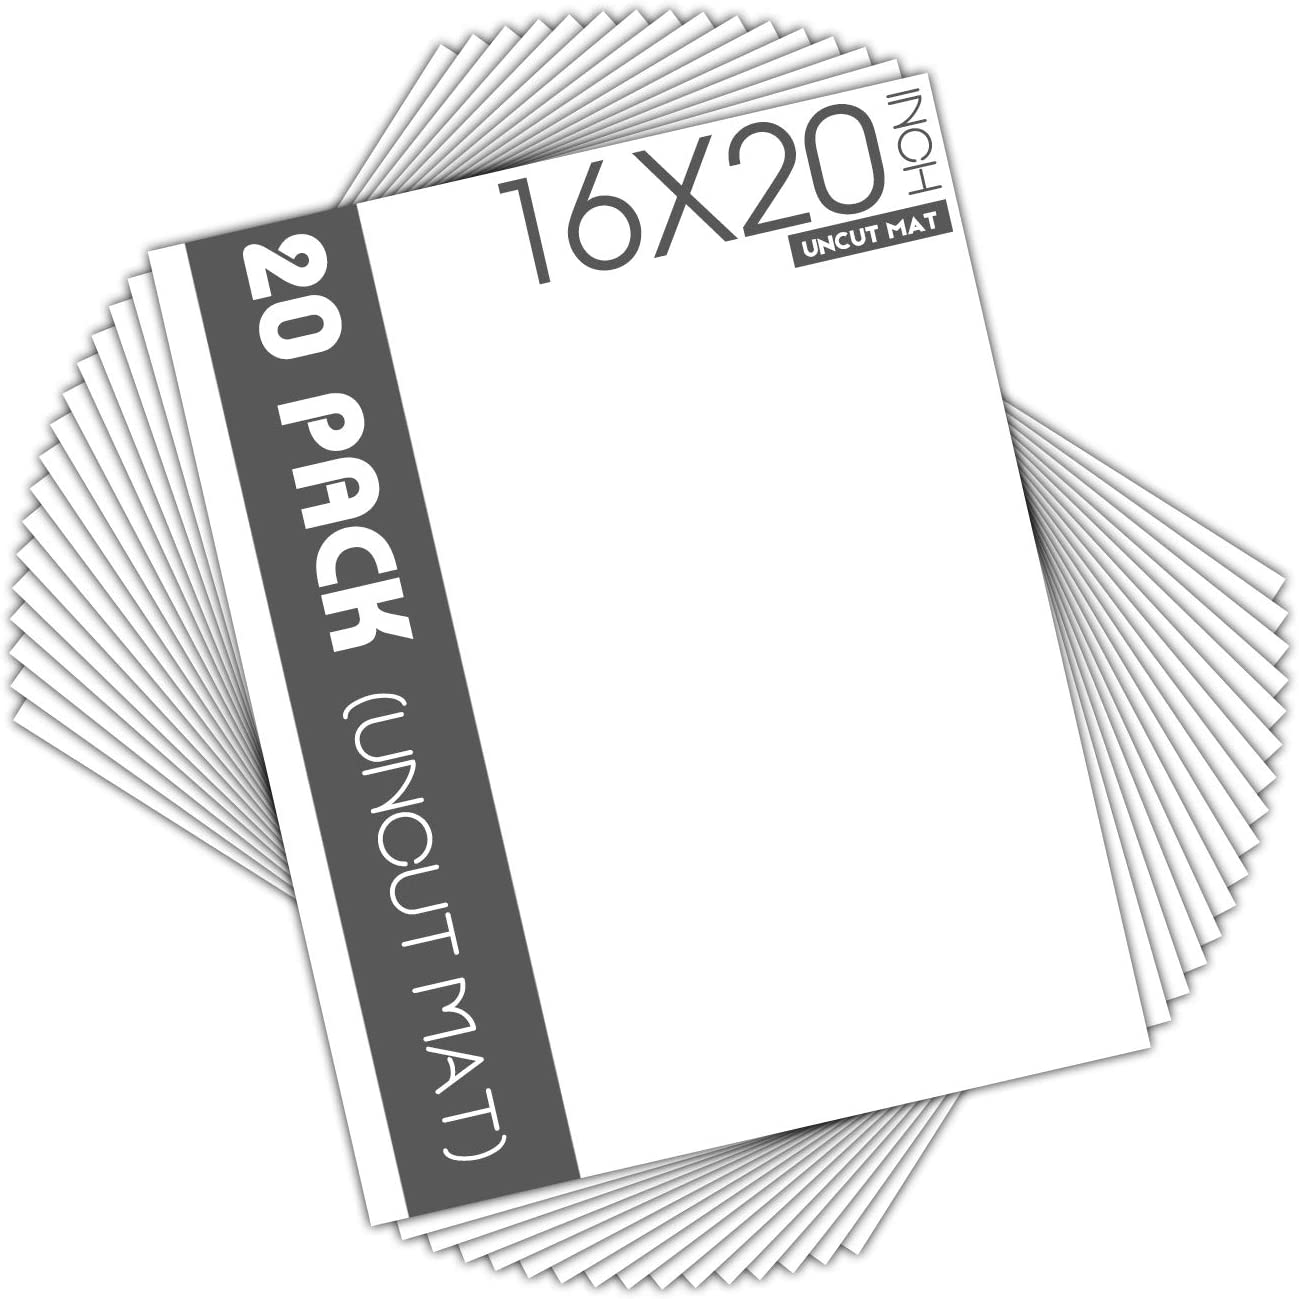 Prints 5x7 20 Pack Mat Board Center Photos for Art Prints and More White Uncut Mat Full Sheet